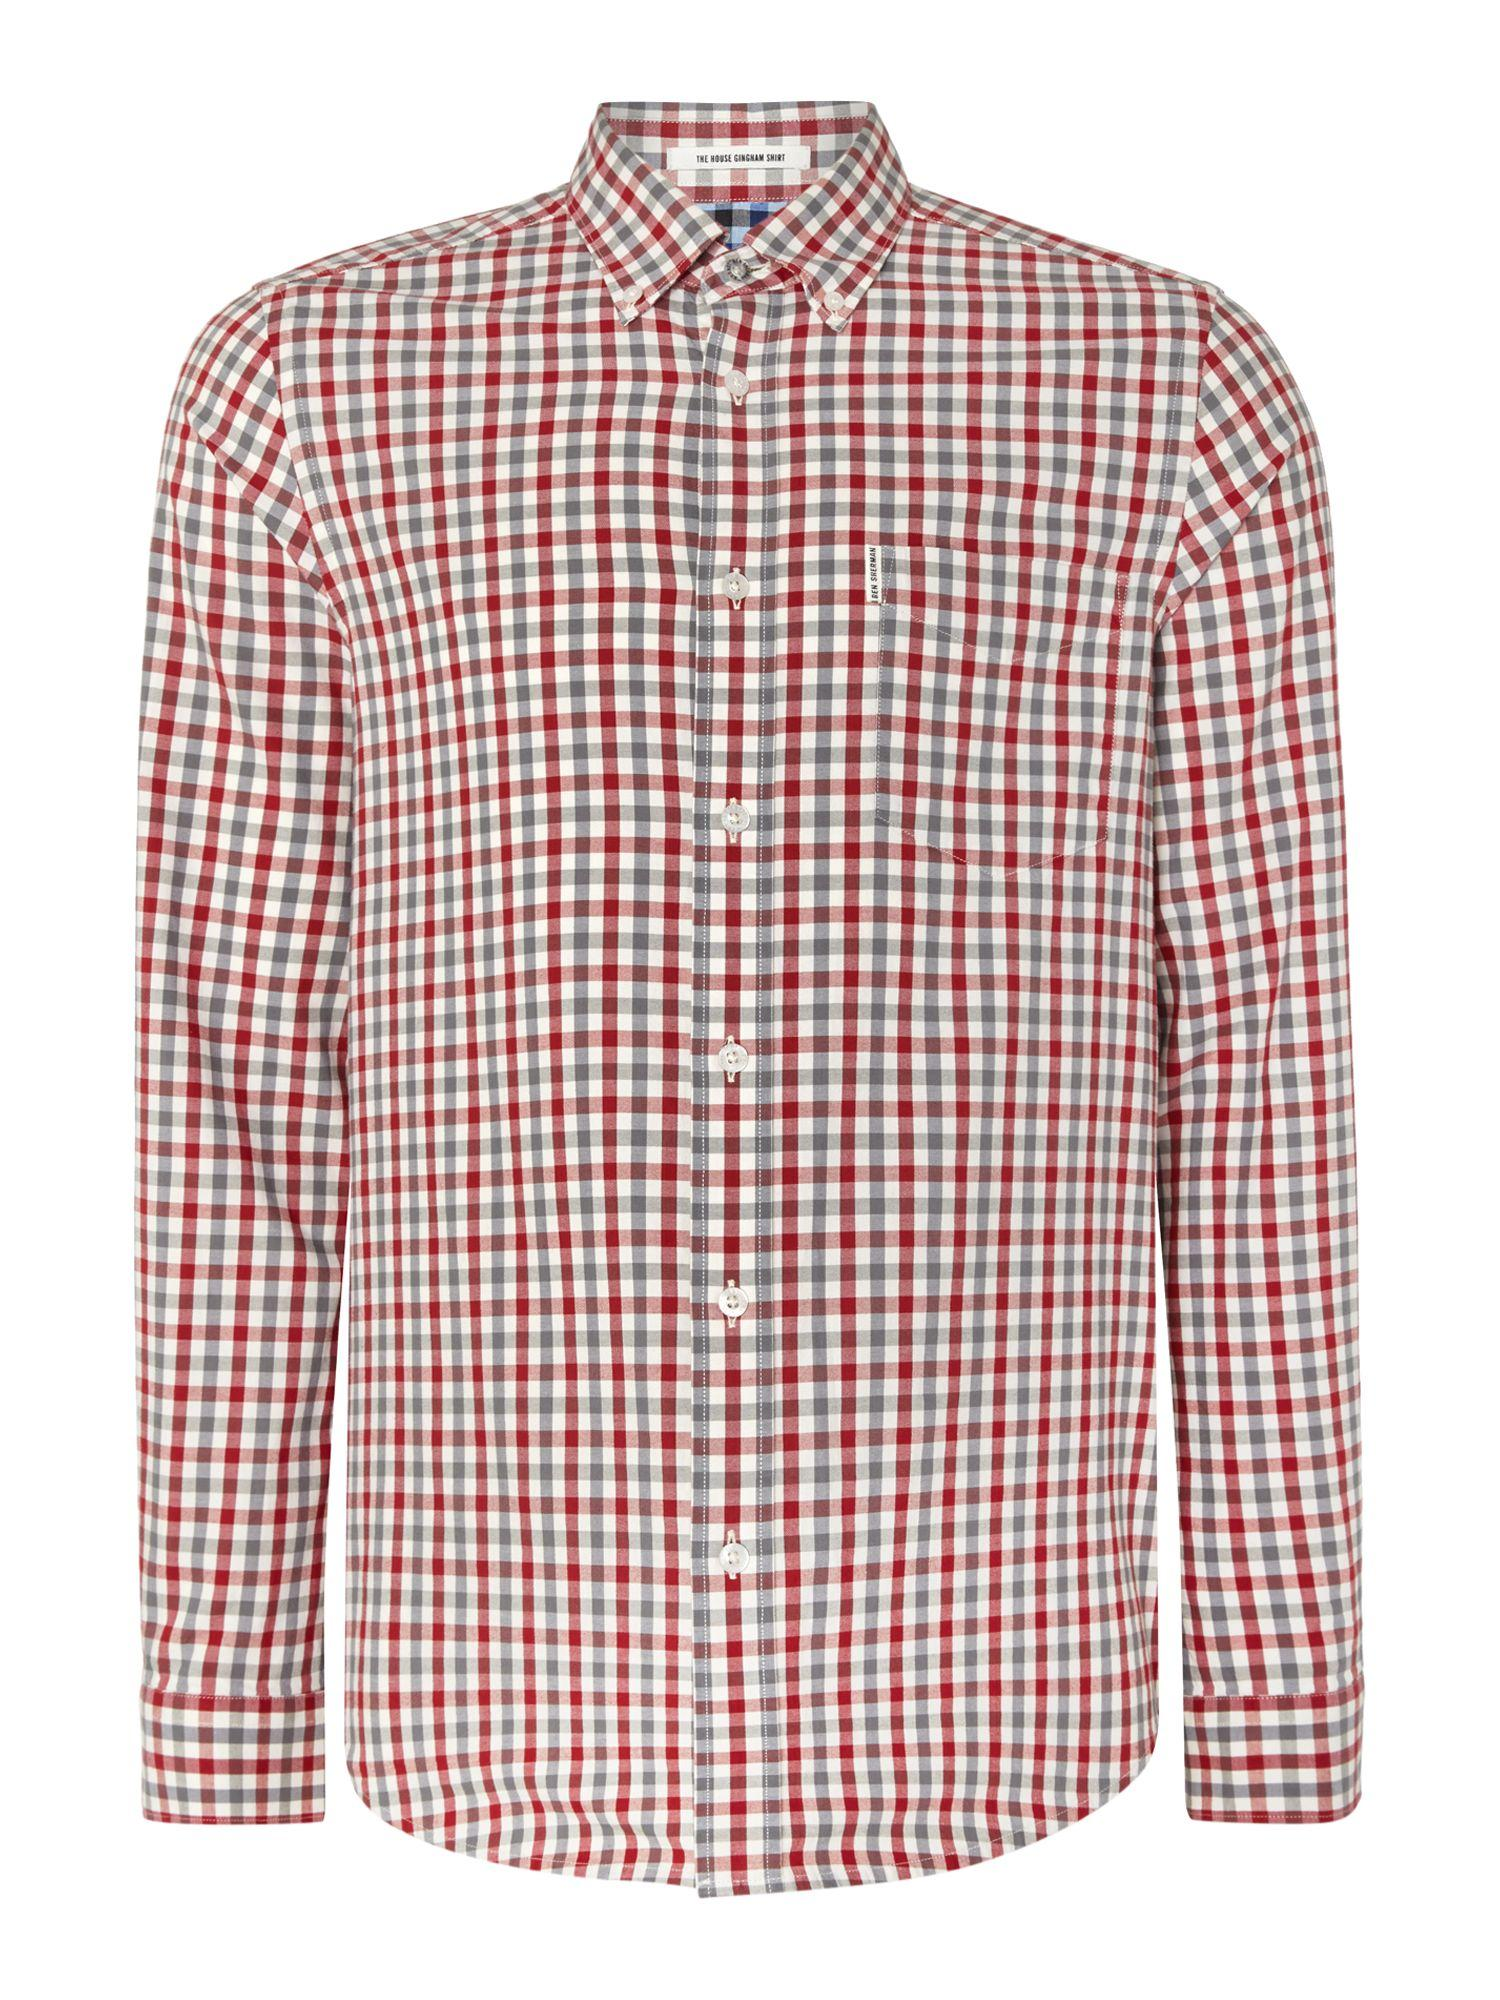 Ben Sherman House Gingham Check Long Sleeve Shirt In Red